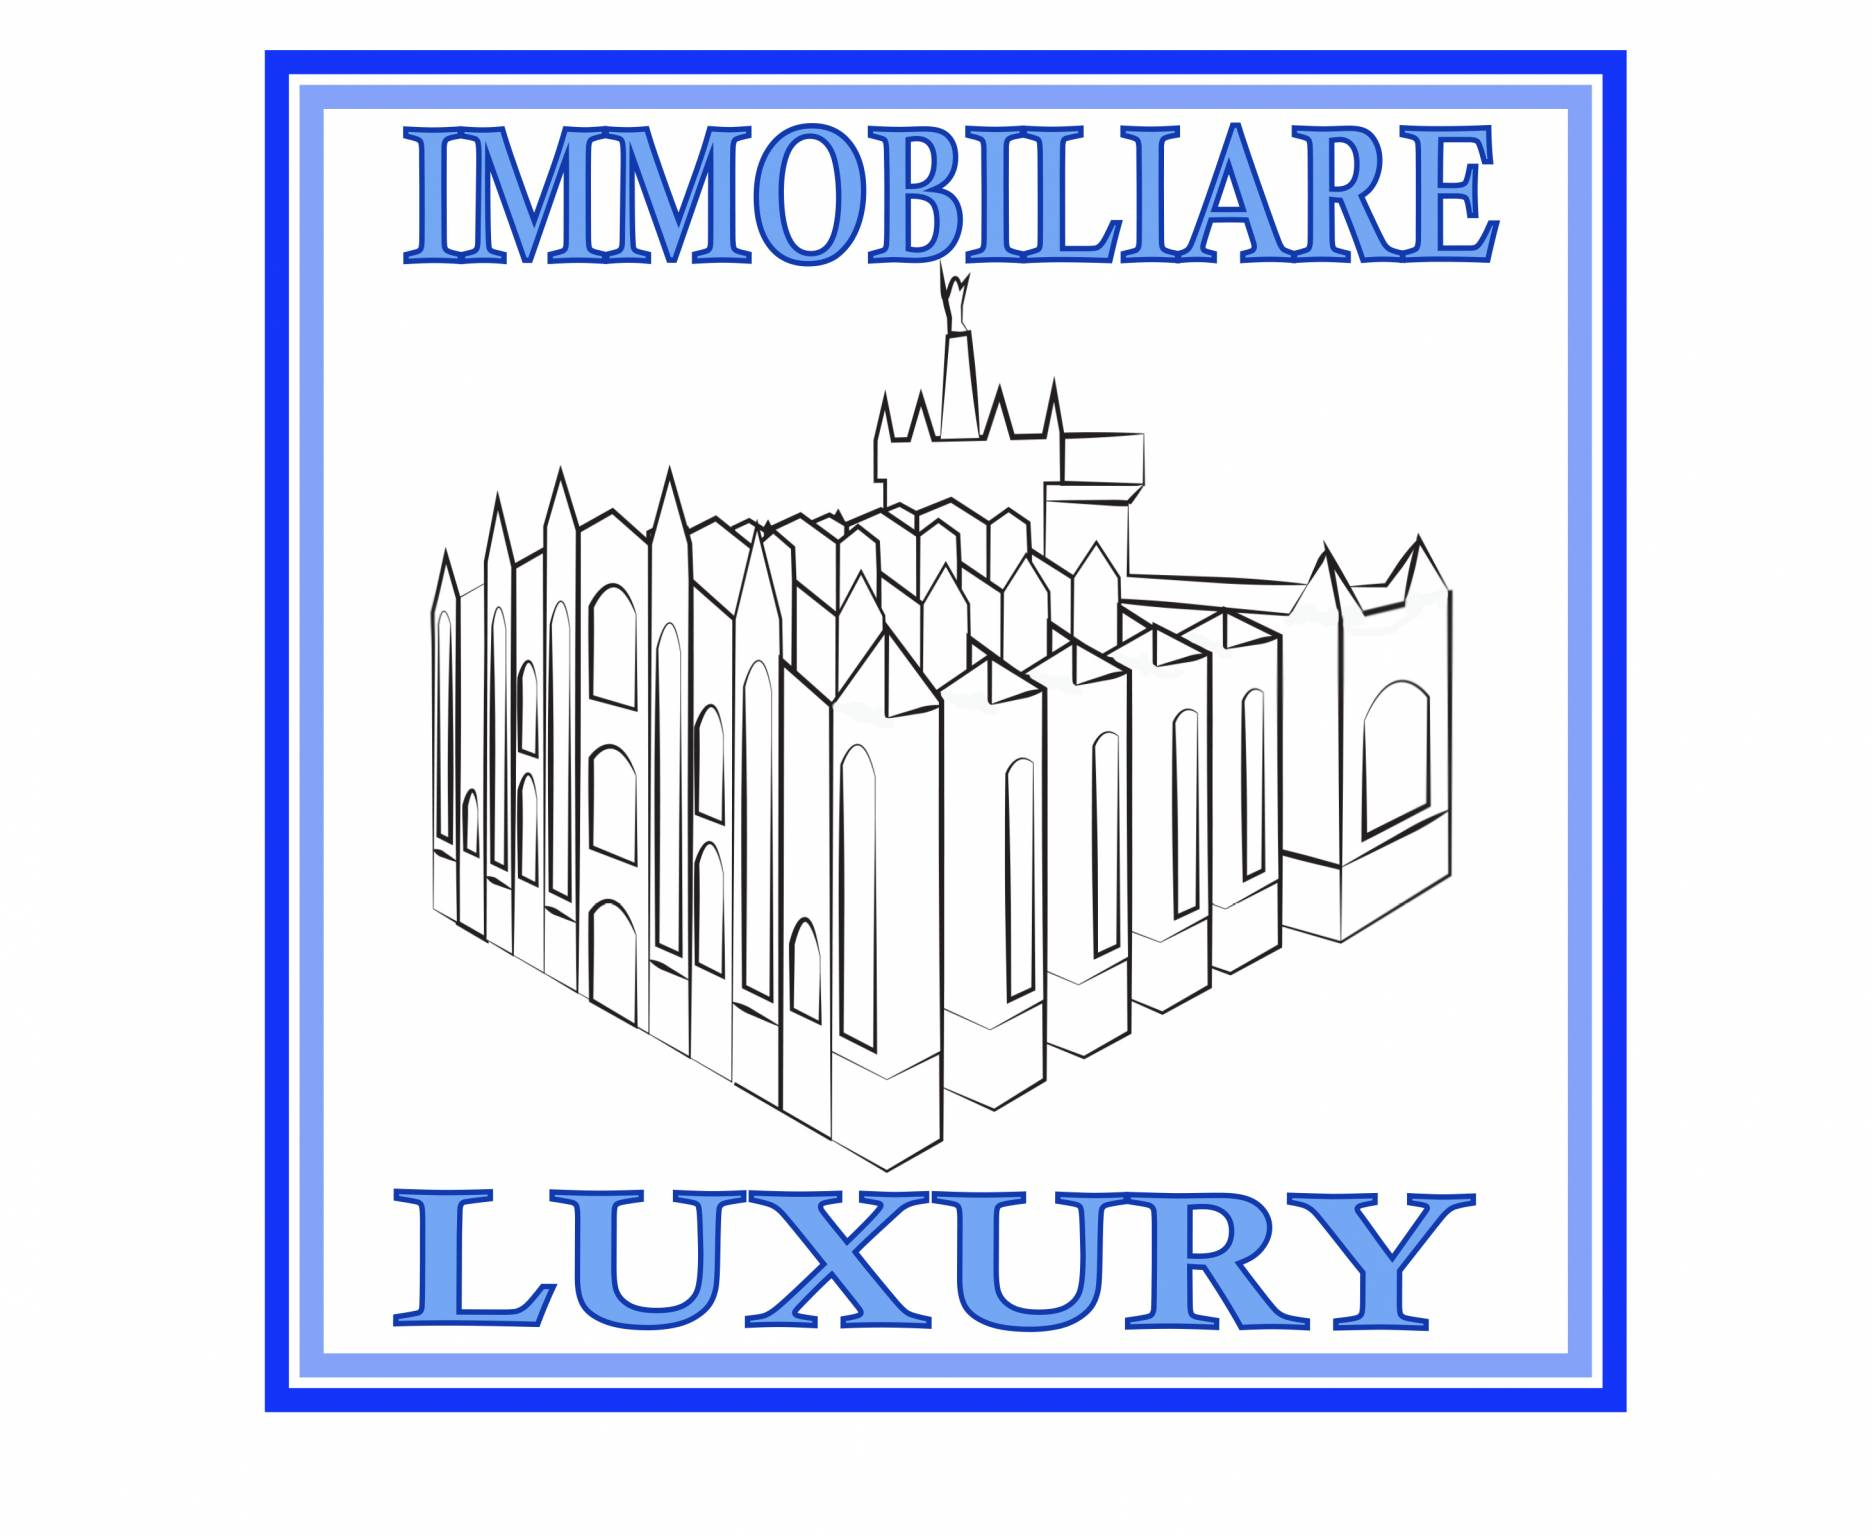 Immobiliare luxury srl